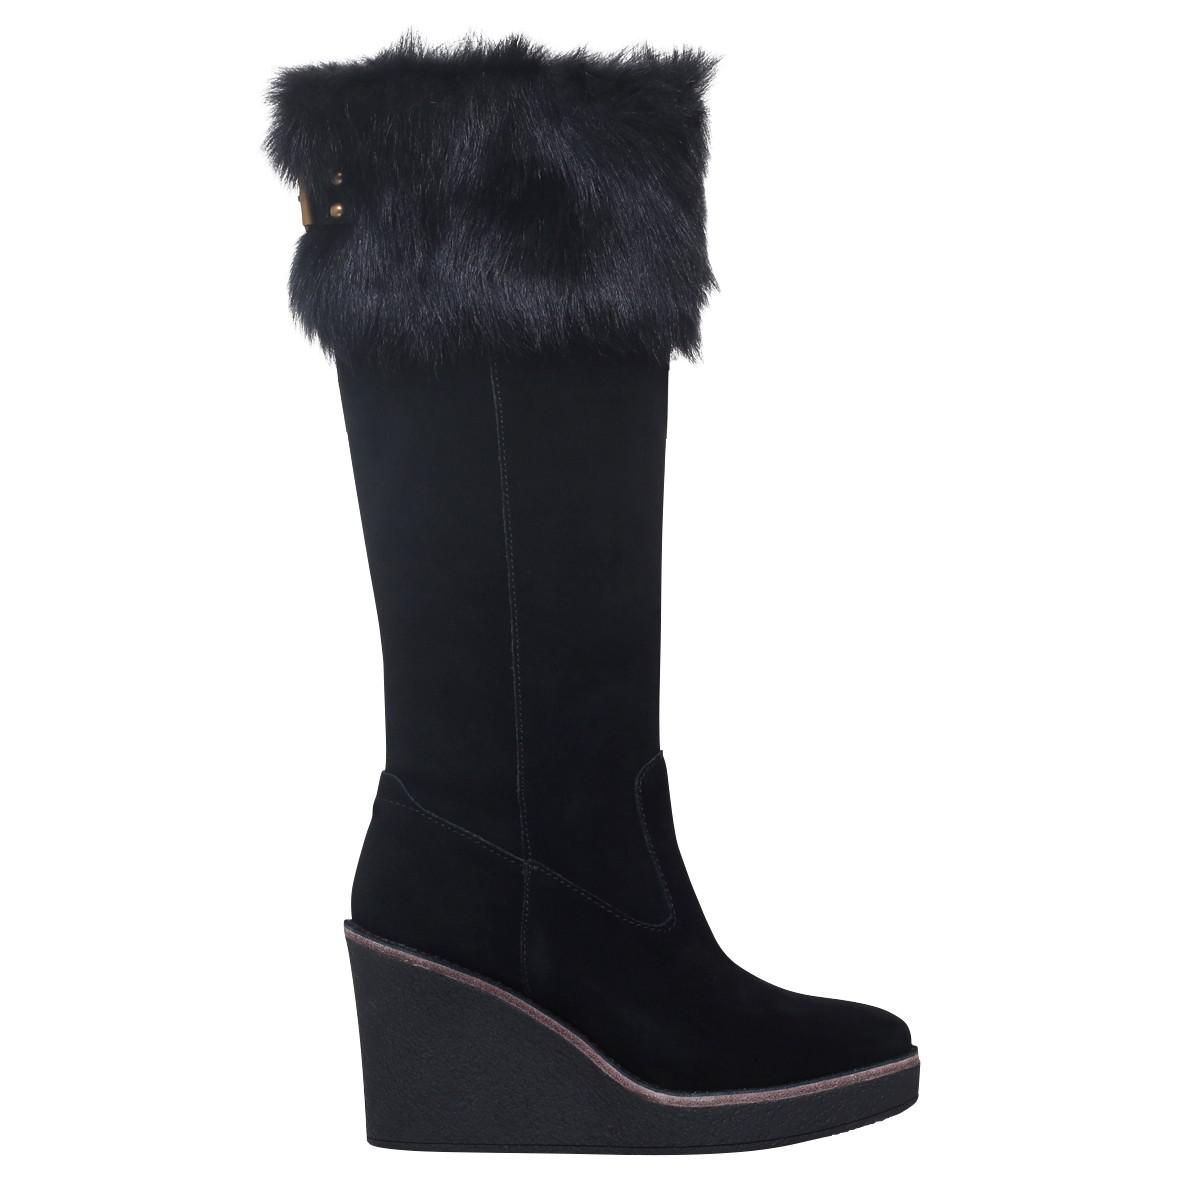 0876528a770 UGG Valberg Wedge Heeled Knee High Boots in Black - Lyst